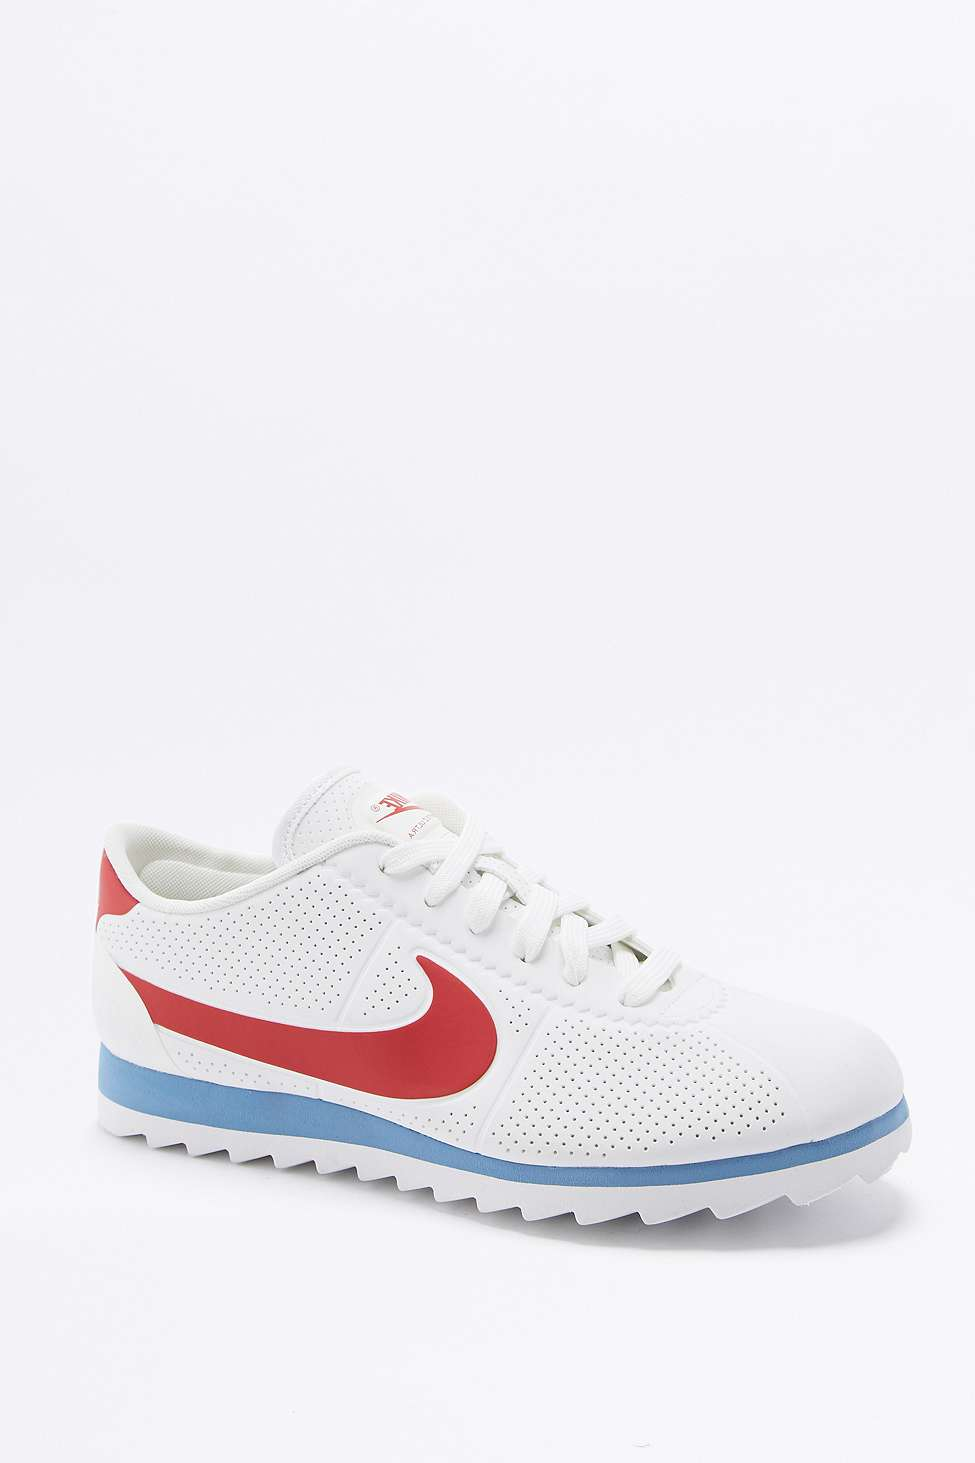 detailed look 57acd 09718 Nike Cortez Ultra Moire Red, White, and Blue Sneakers